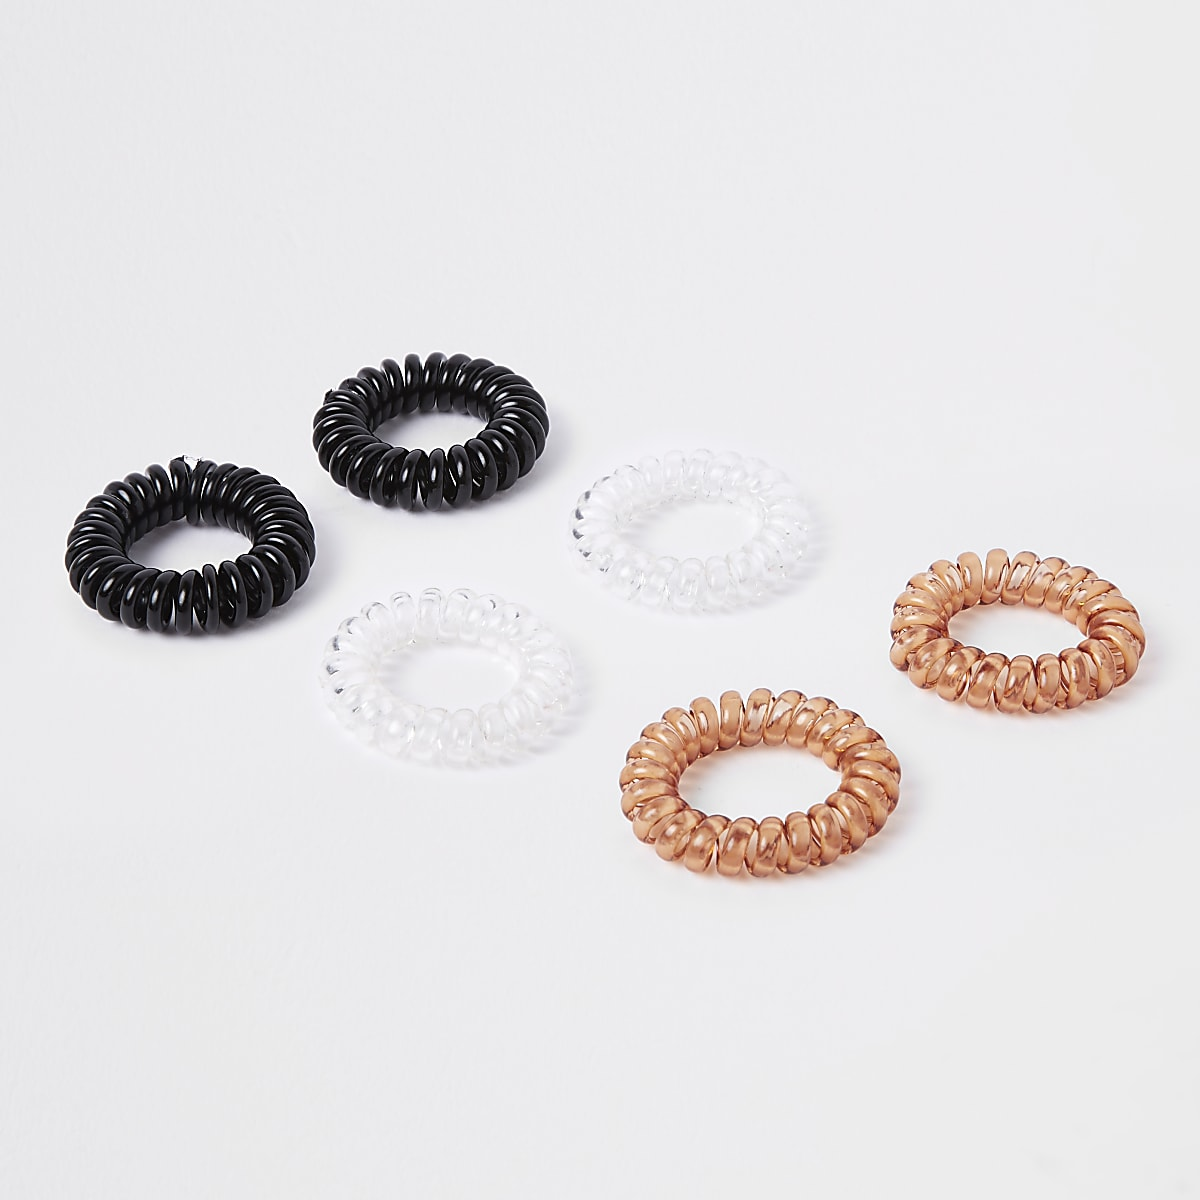 Black spiral hair tie pack